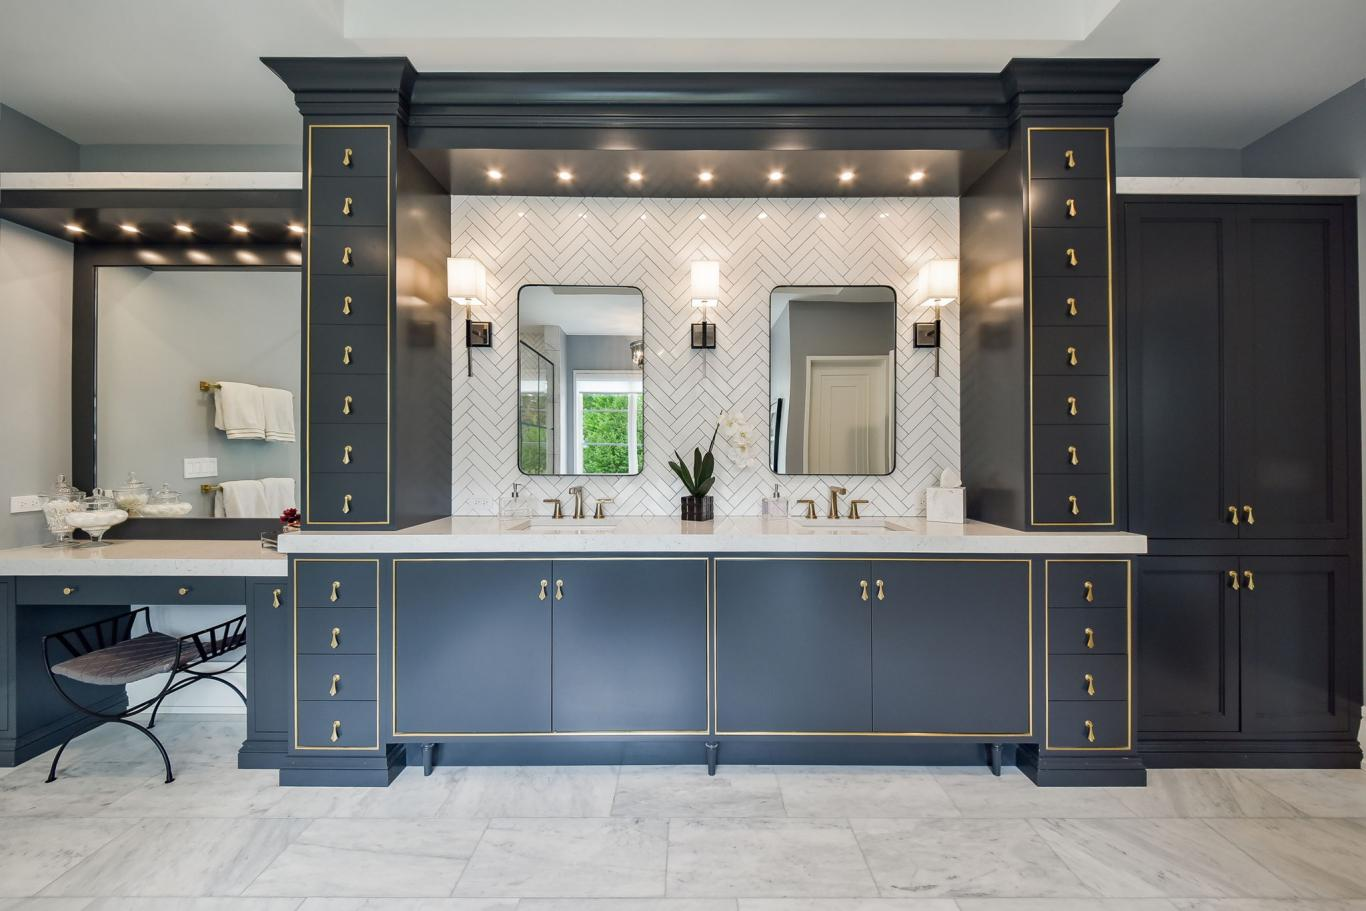 Custom Luxury Homes By Charleston Building - Master Suite Bathroom 2 -